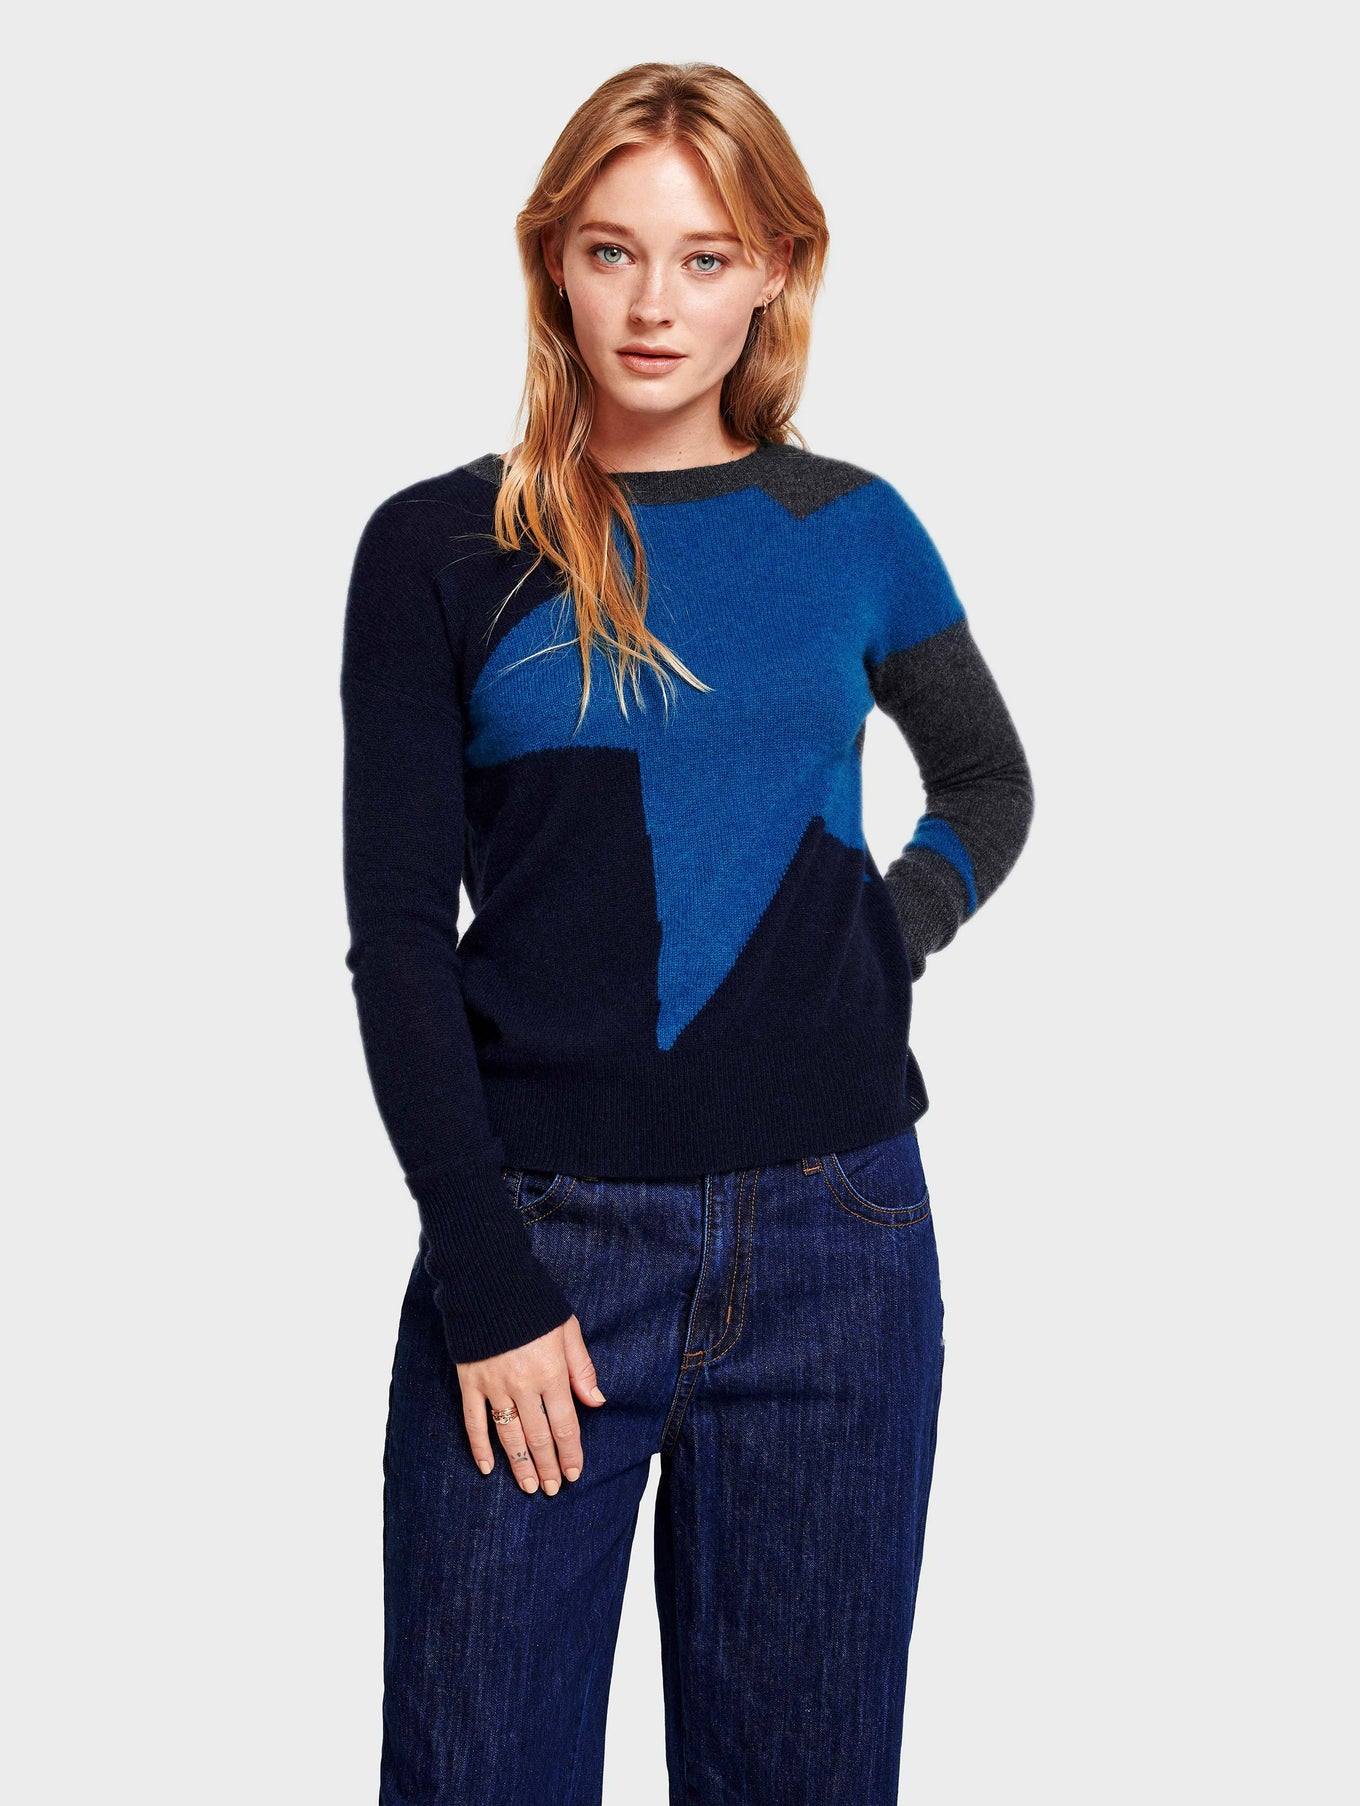 Cashmere Exploded Star Crewneck - Cosmic Teal Multi - Image 1